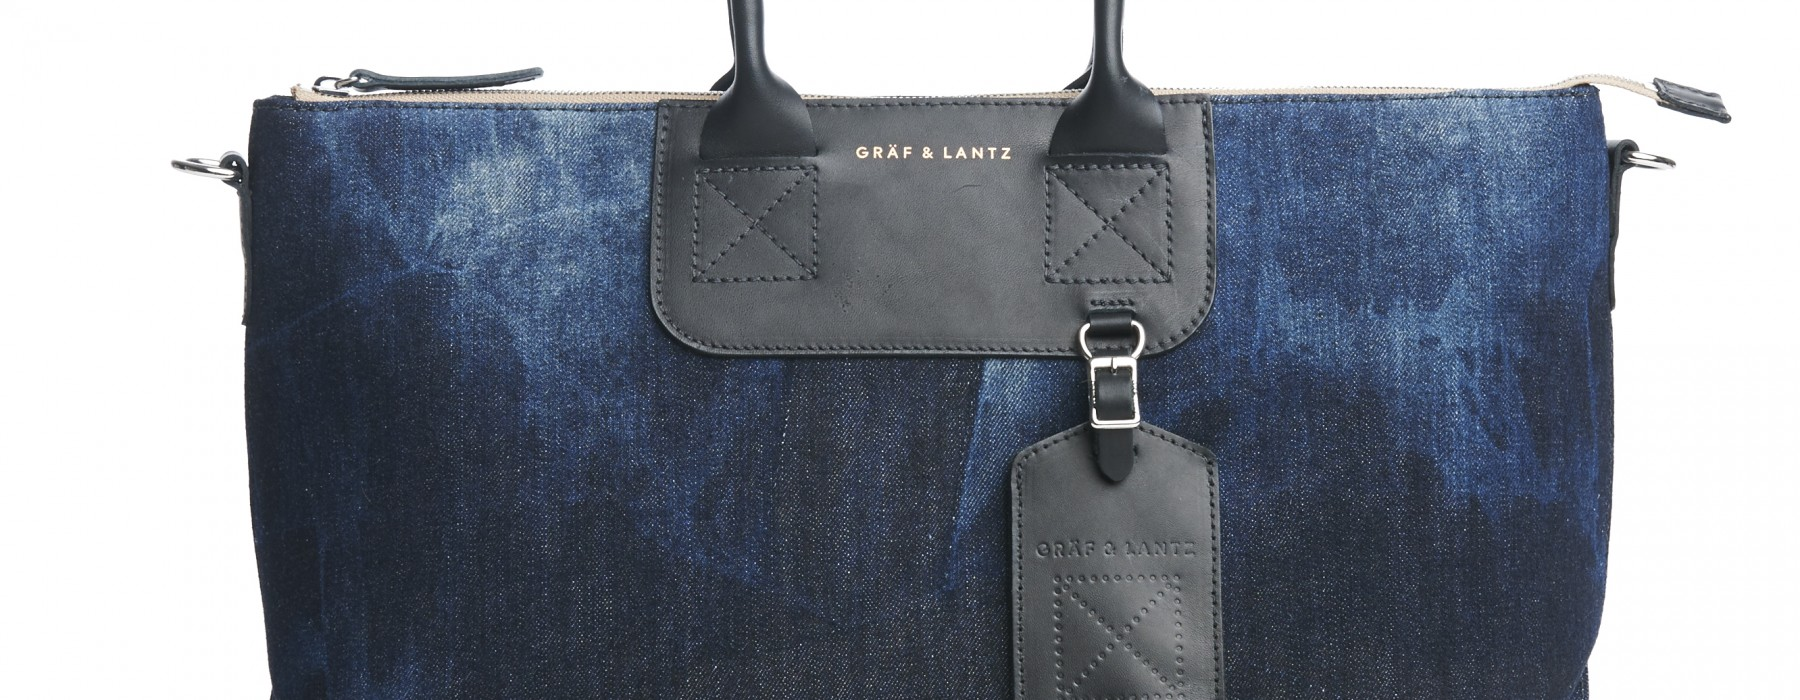 Top 5 Weekend Bags | Graf & Lantz